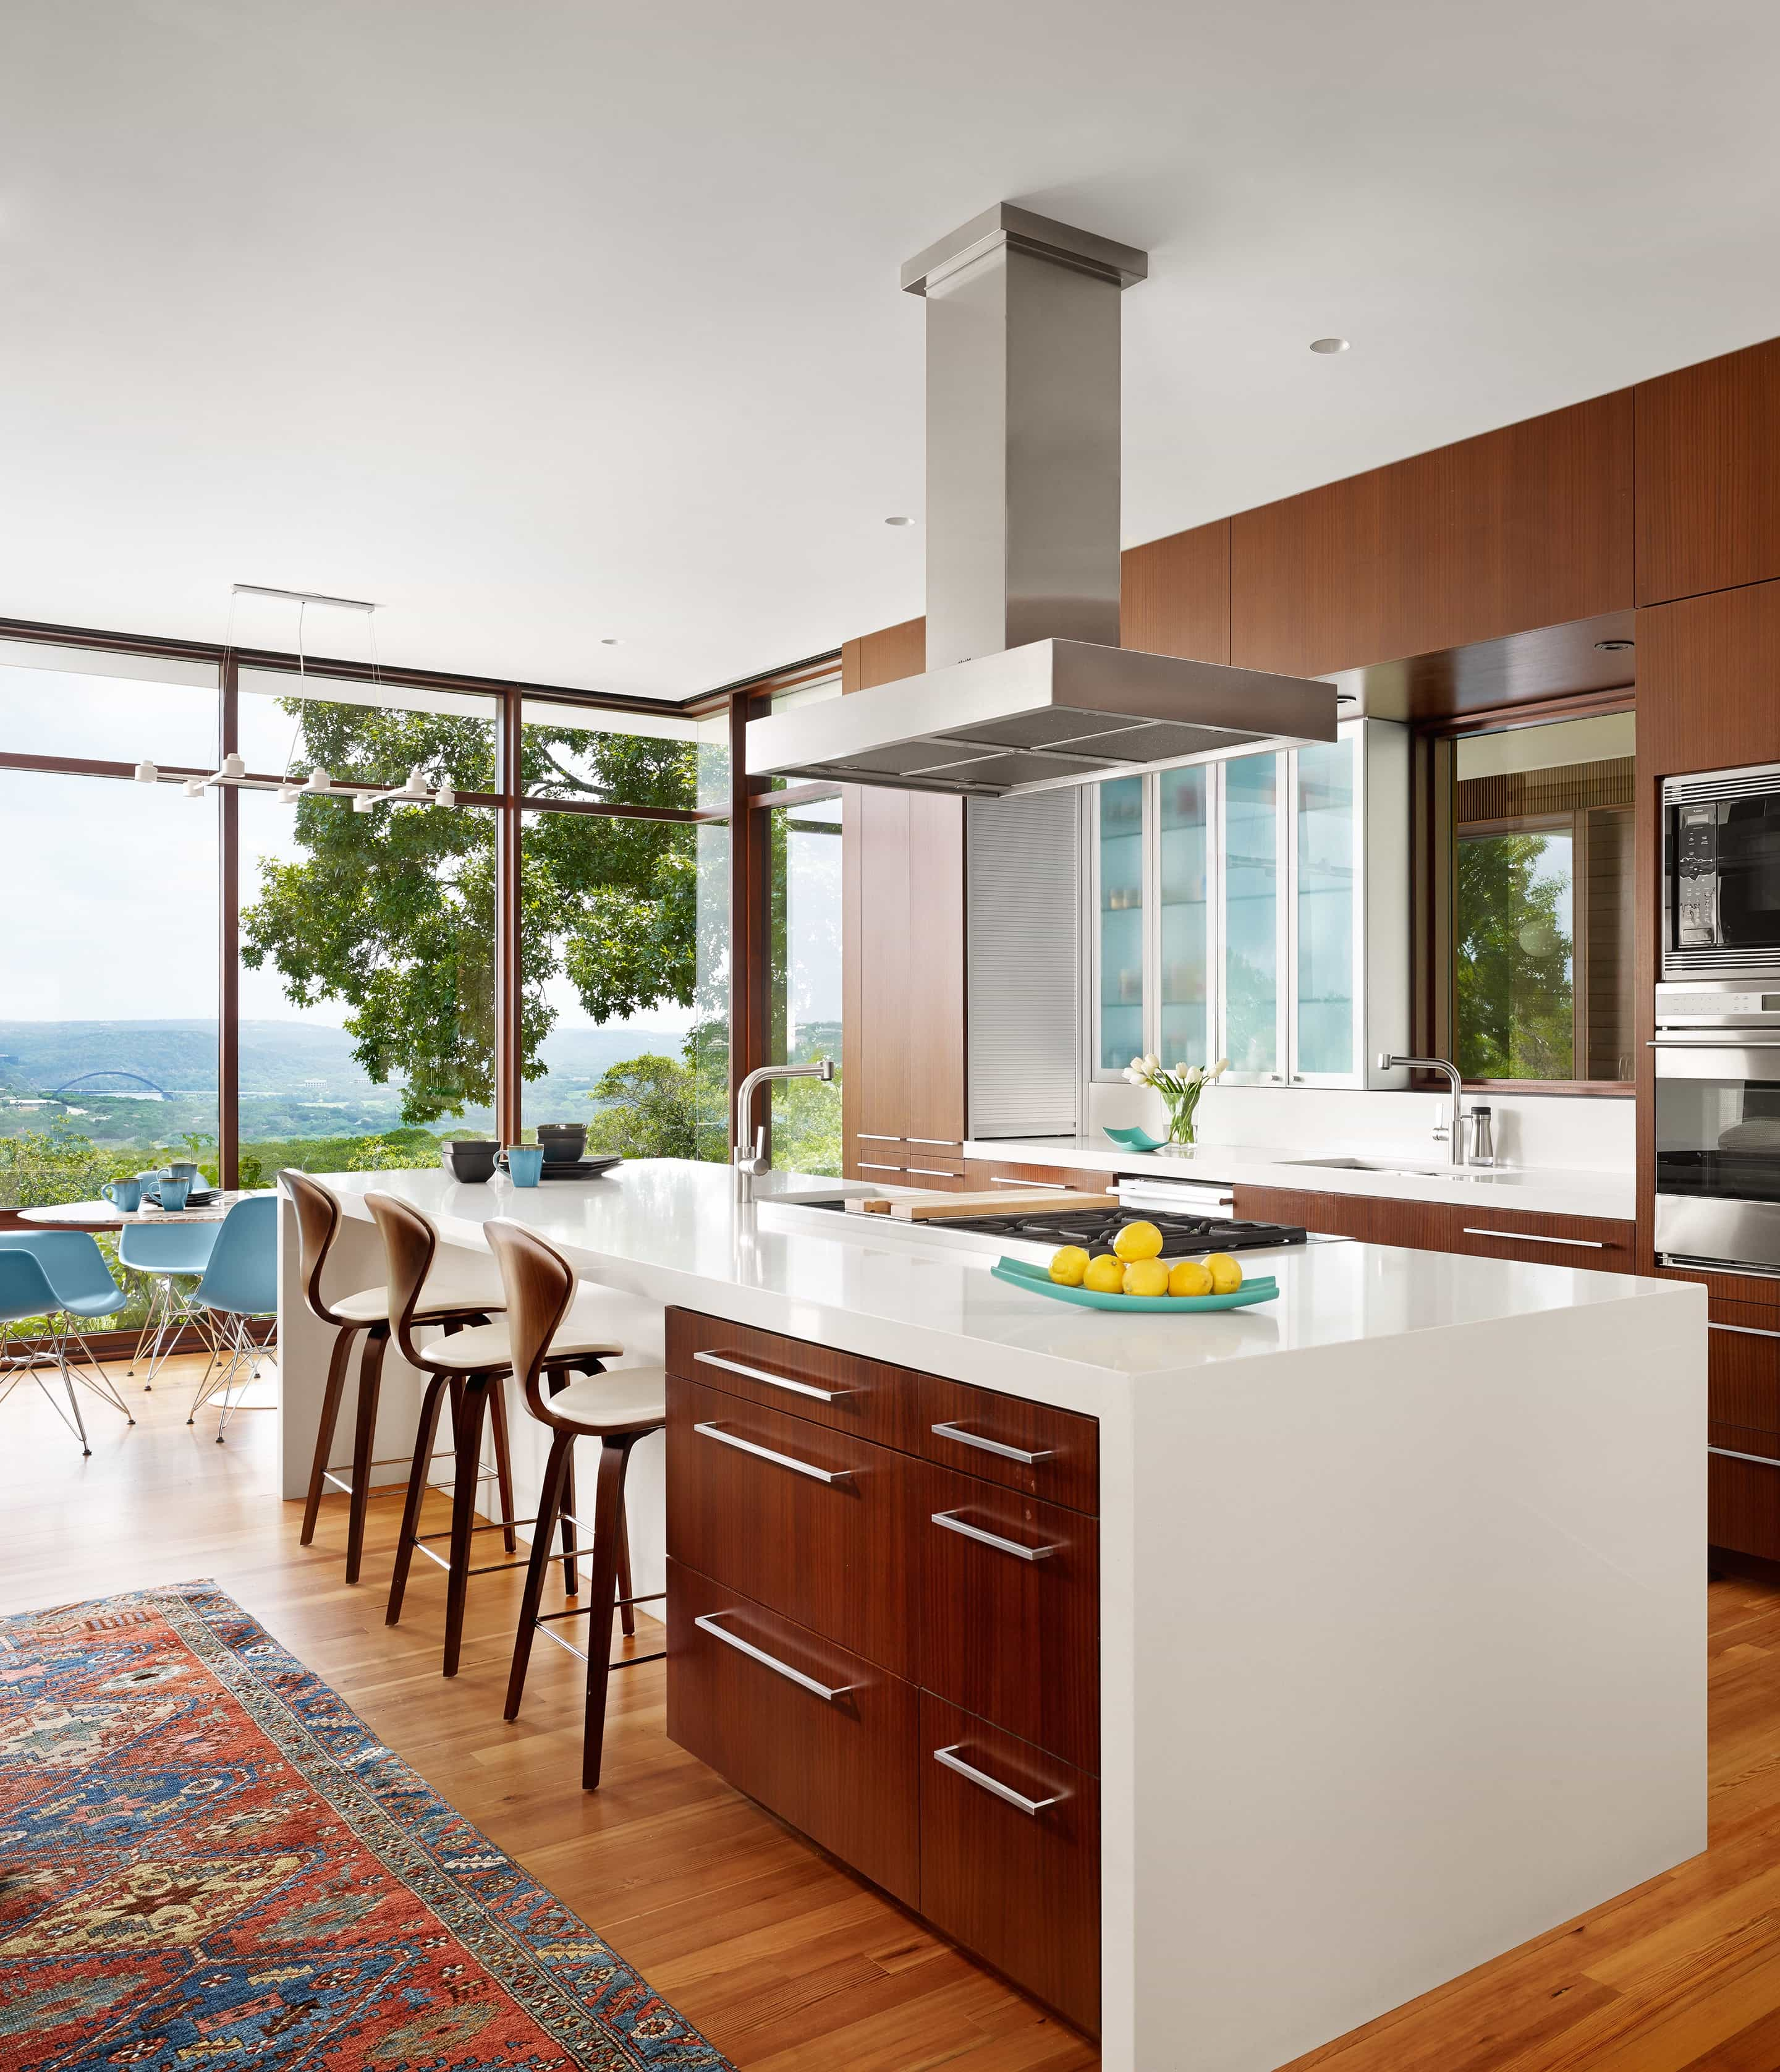 Cozy Modern Fitted Kitchen Interior With Flat Panels Furniture (Image 3 of 15)